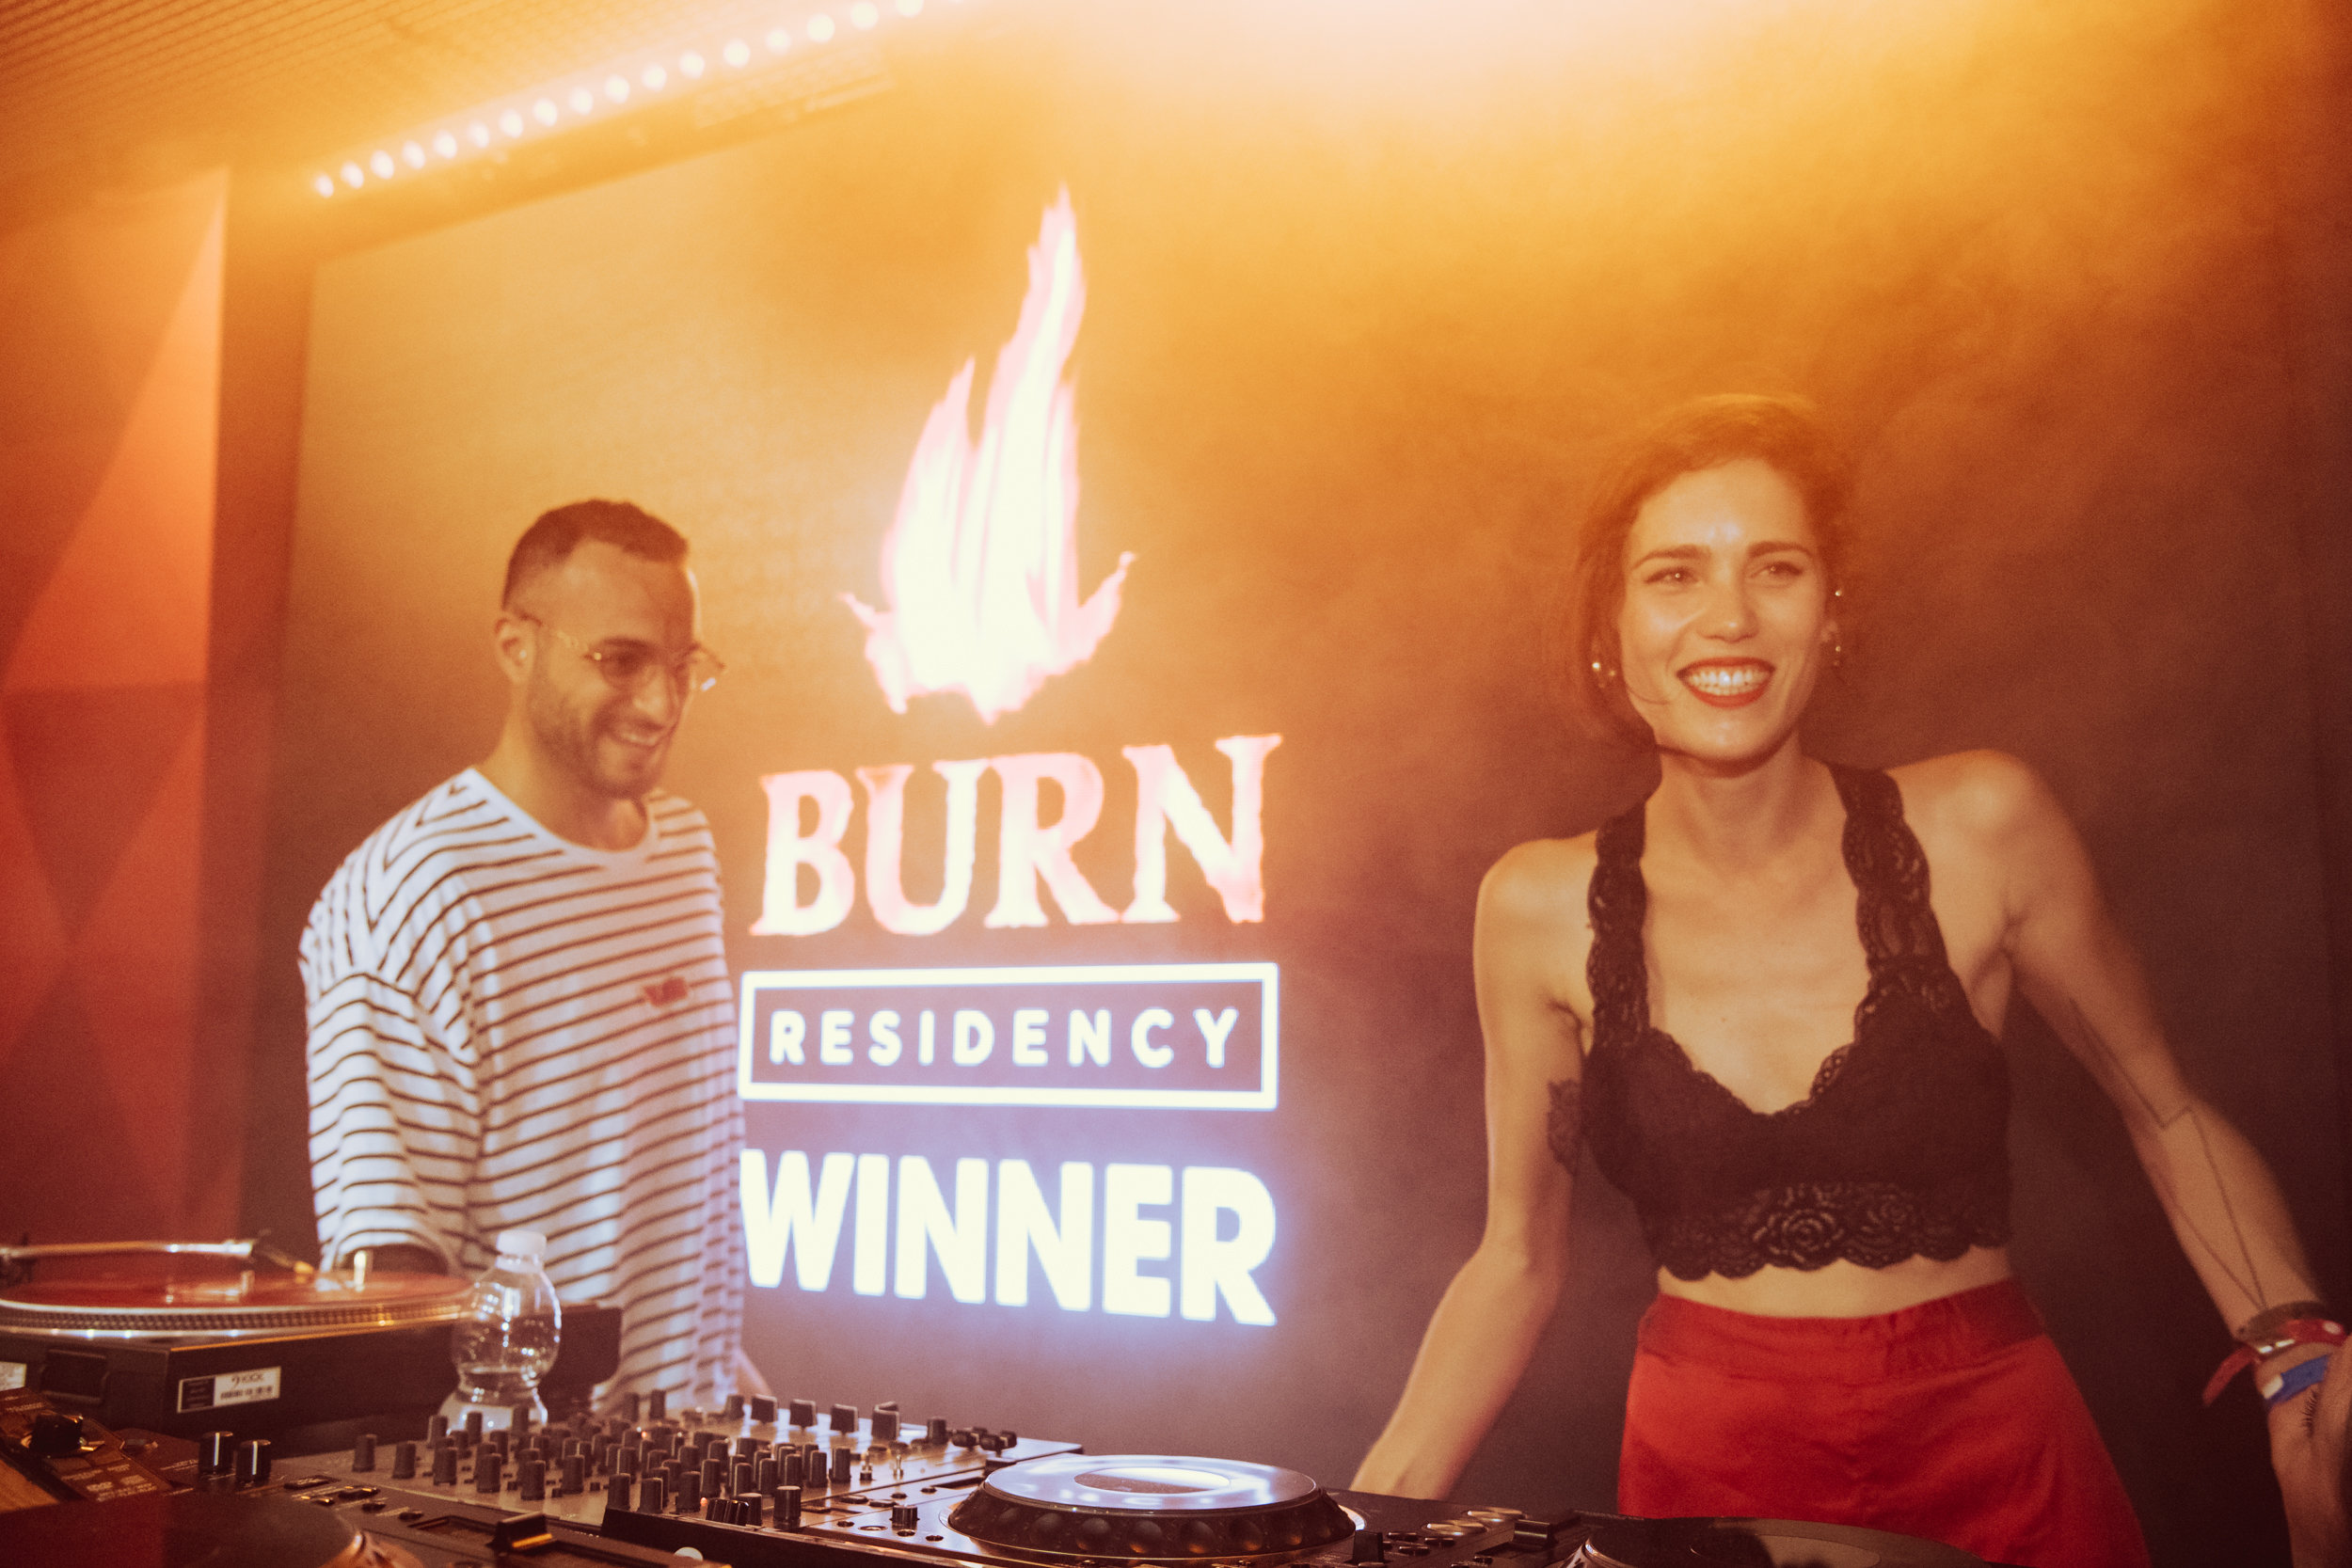 BURN Residency Winner Revealed: Spain's Anabel Sigel